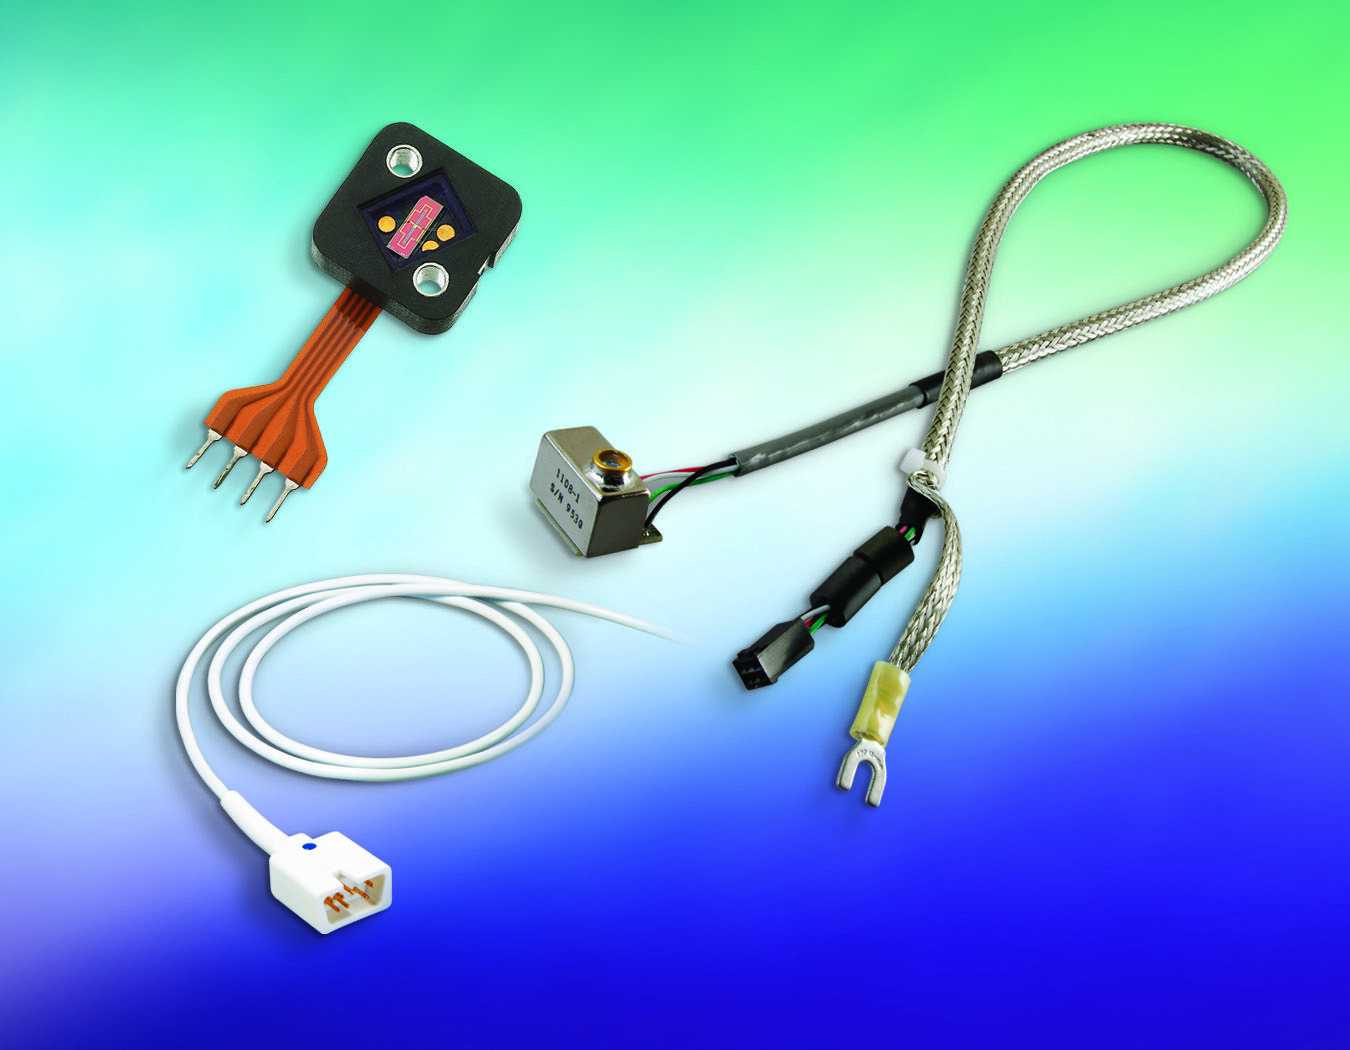 OSI Optoelectronics Introduces Cable and Harness Assembly Services